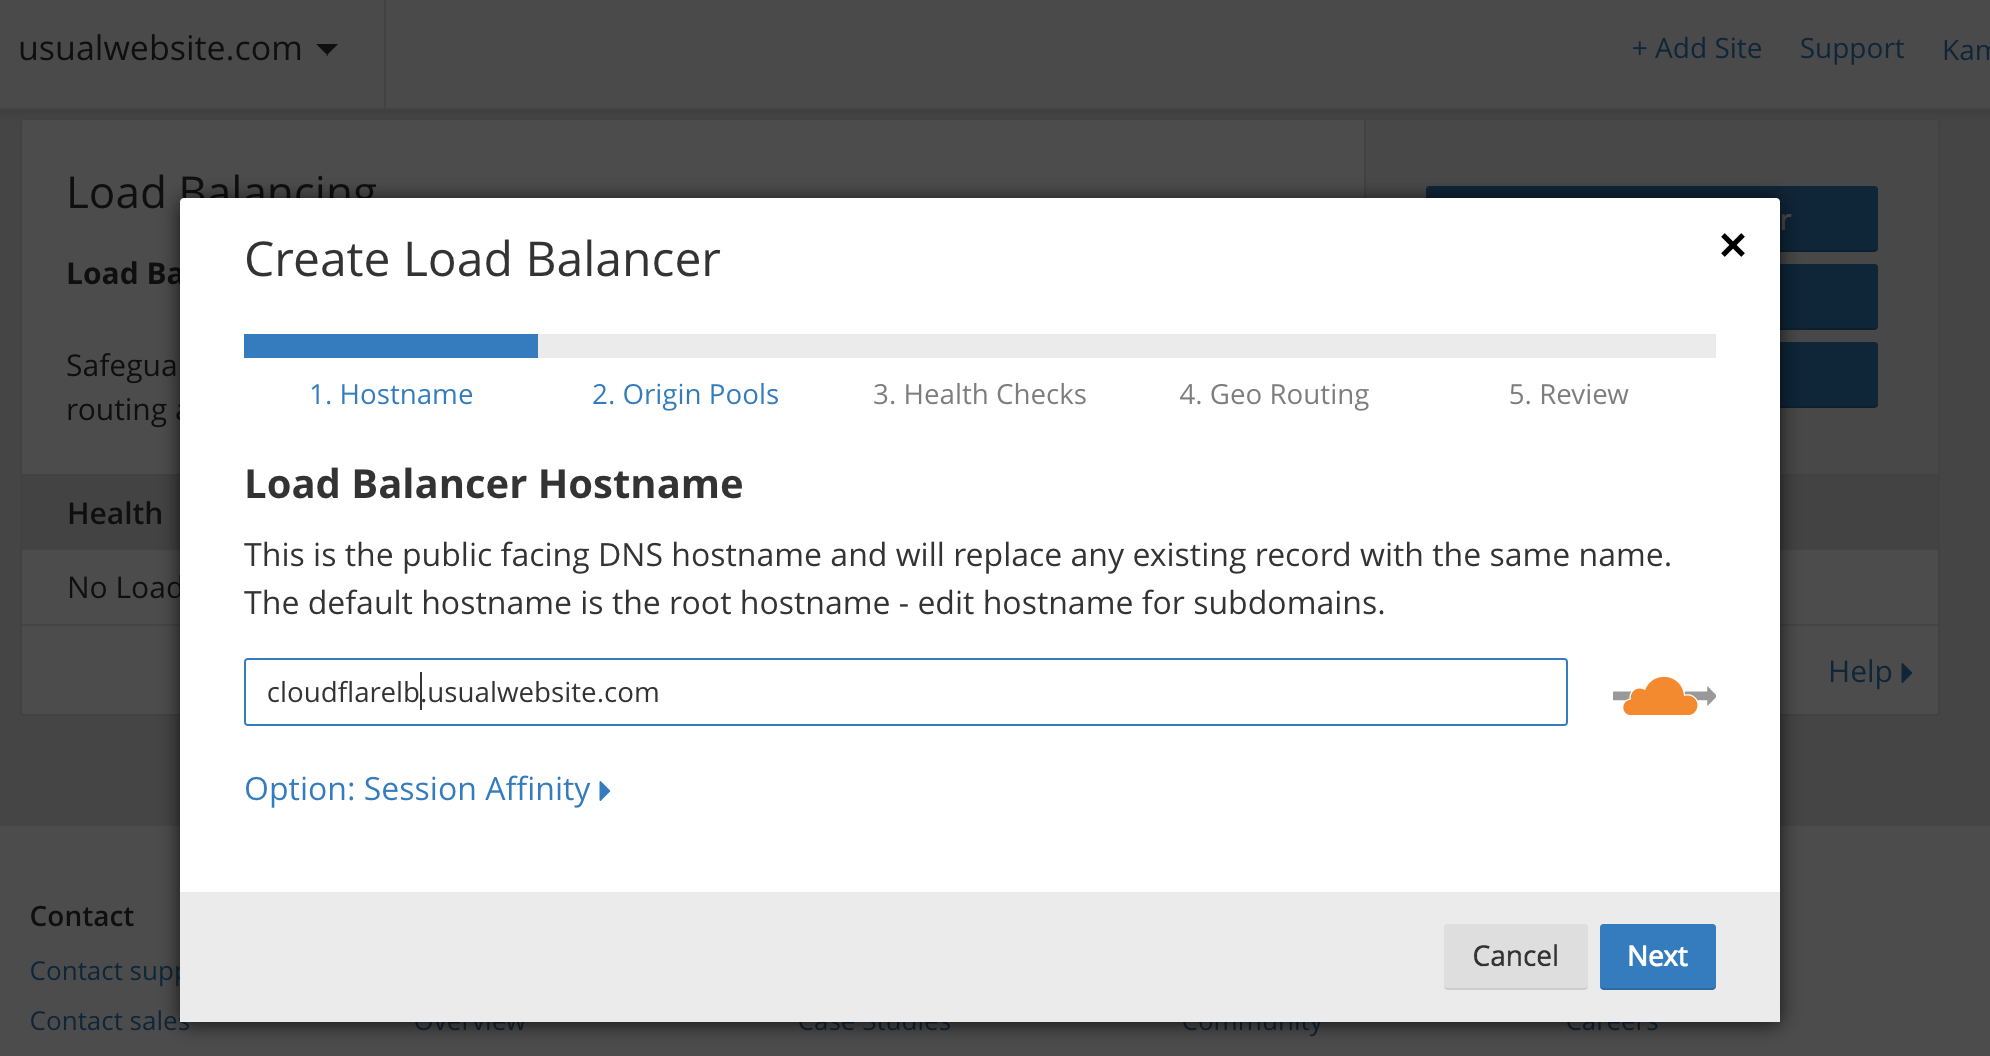 Old URL: https://support.cloudflare.com/hc/article_attachments/115003974251/Hostname_CF_Load_balancer.png Article IDs: 115003384591 | Using Kubernetes on GKE and AWS with Cloudflare Load Balancer